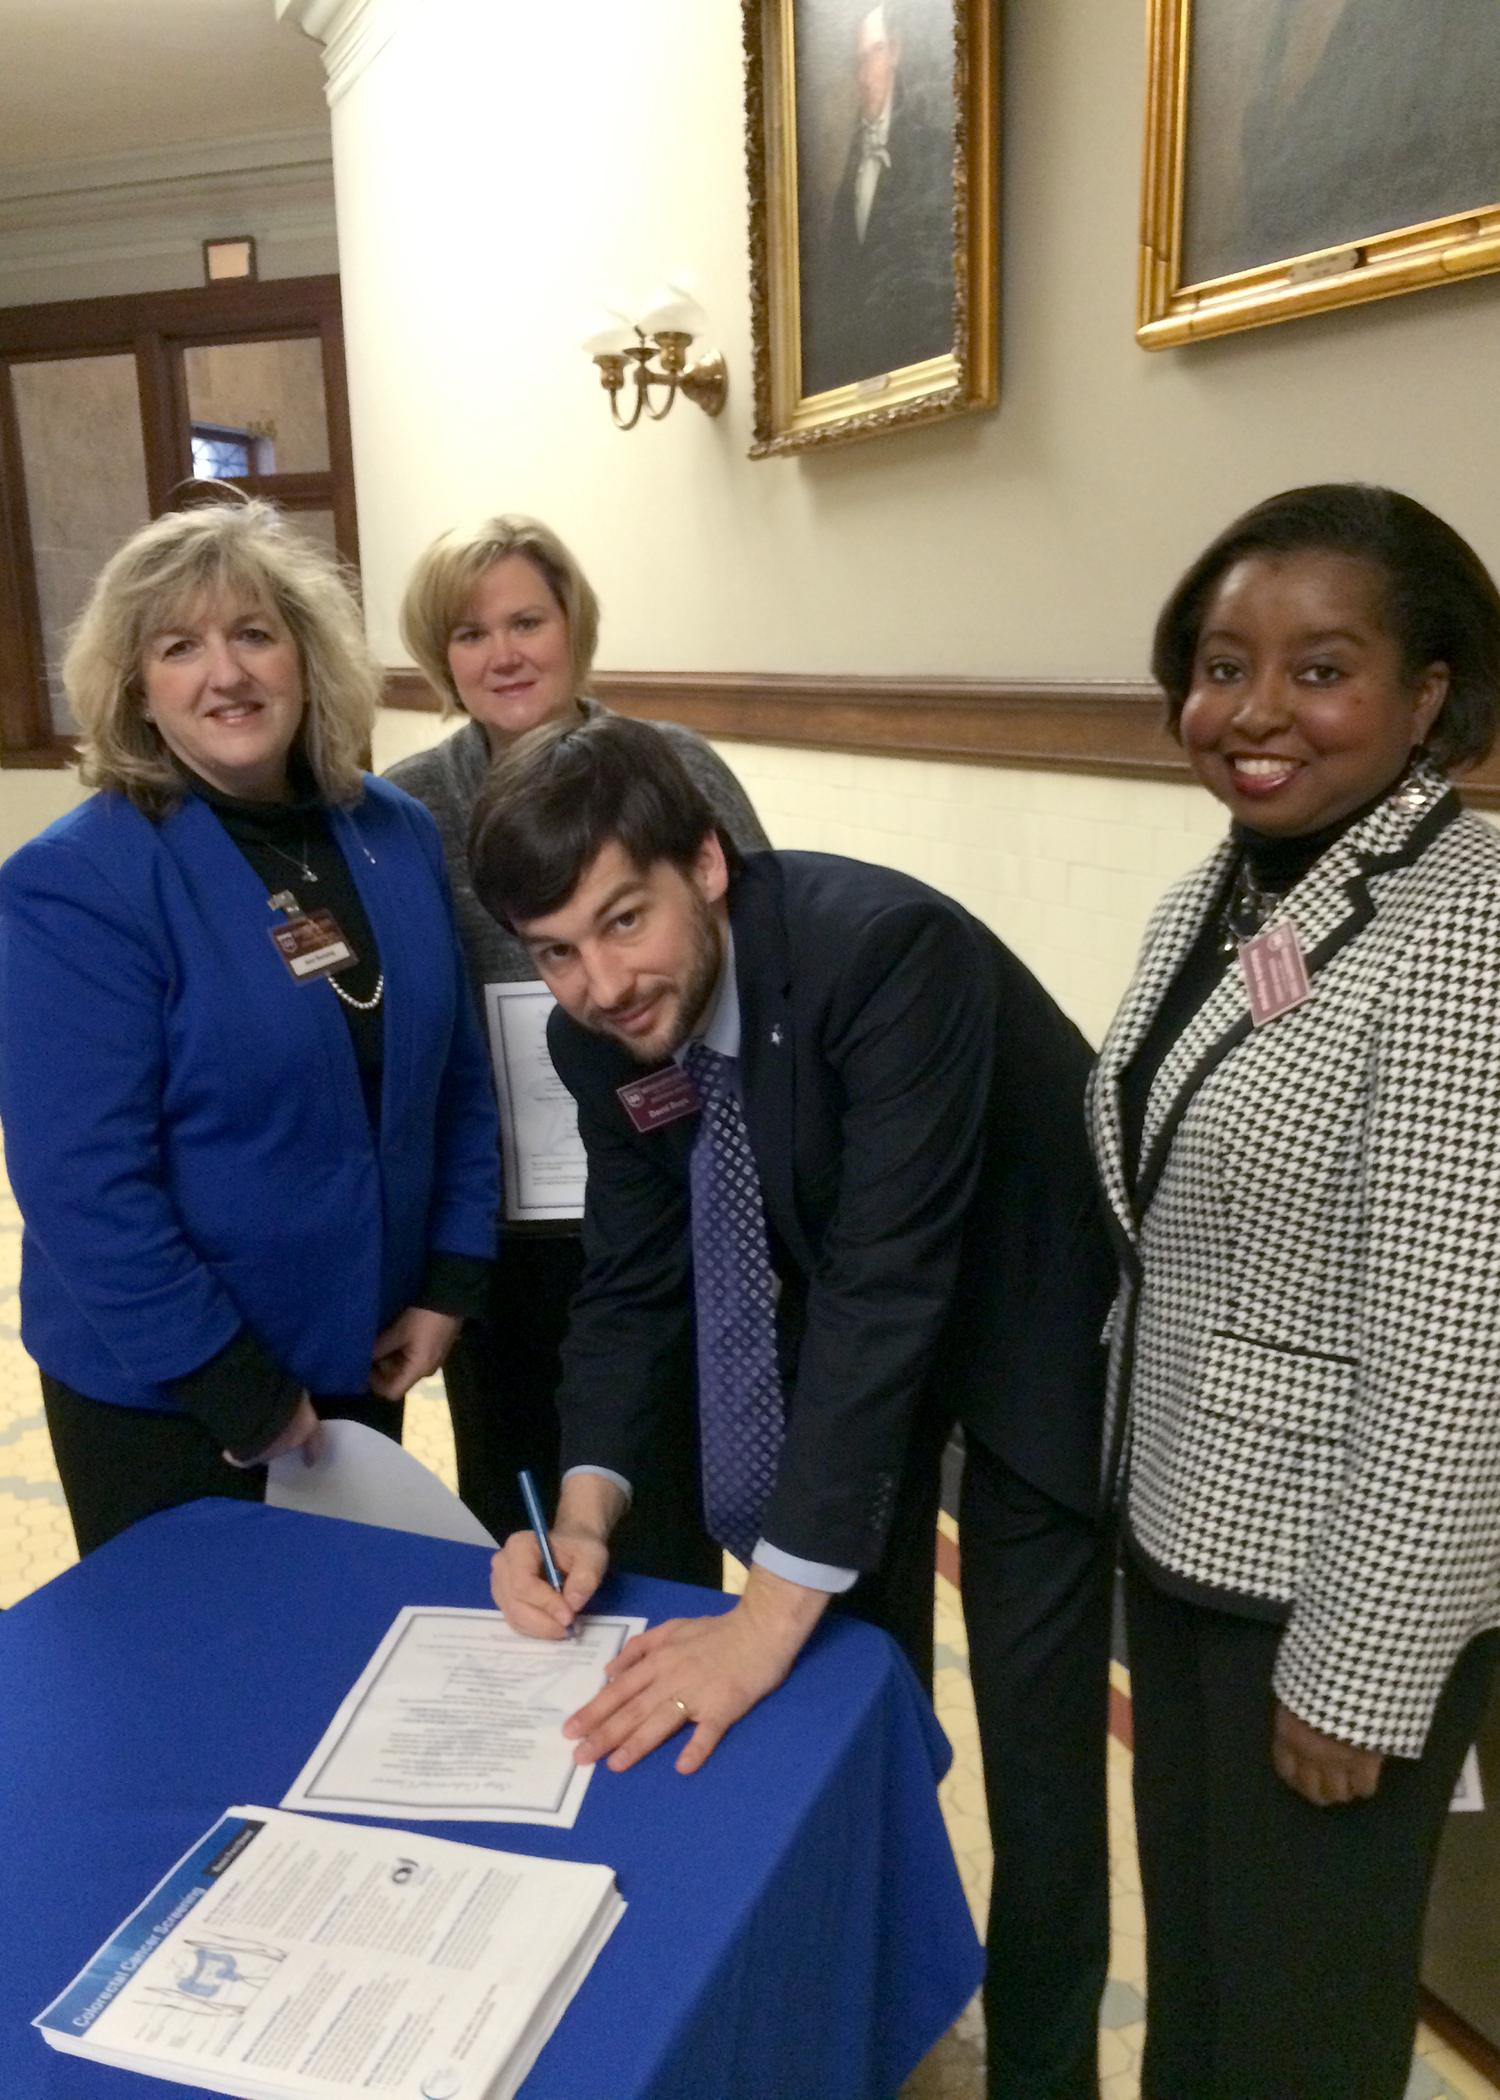 Mississippi State University Extension Service health specialist David Buys signs a pledge to be screened for colorectal cancer in 2015. Other representatives of the MSU Extension Service, Ann Sansing (from left), Theresa Hand and Natasha Haynes, are joining him in the awareness event at the Mississippi Capitol on March 9, 2015. (Submitted photo)